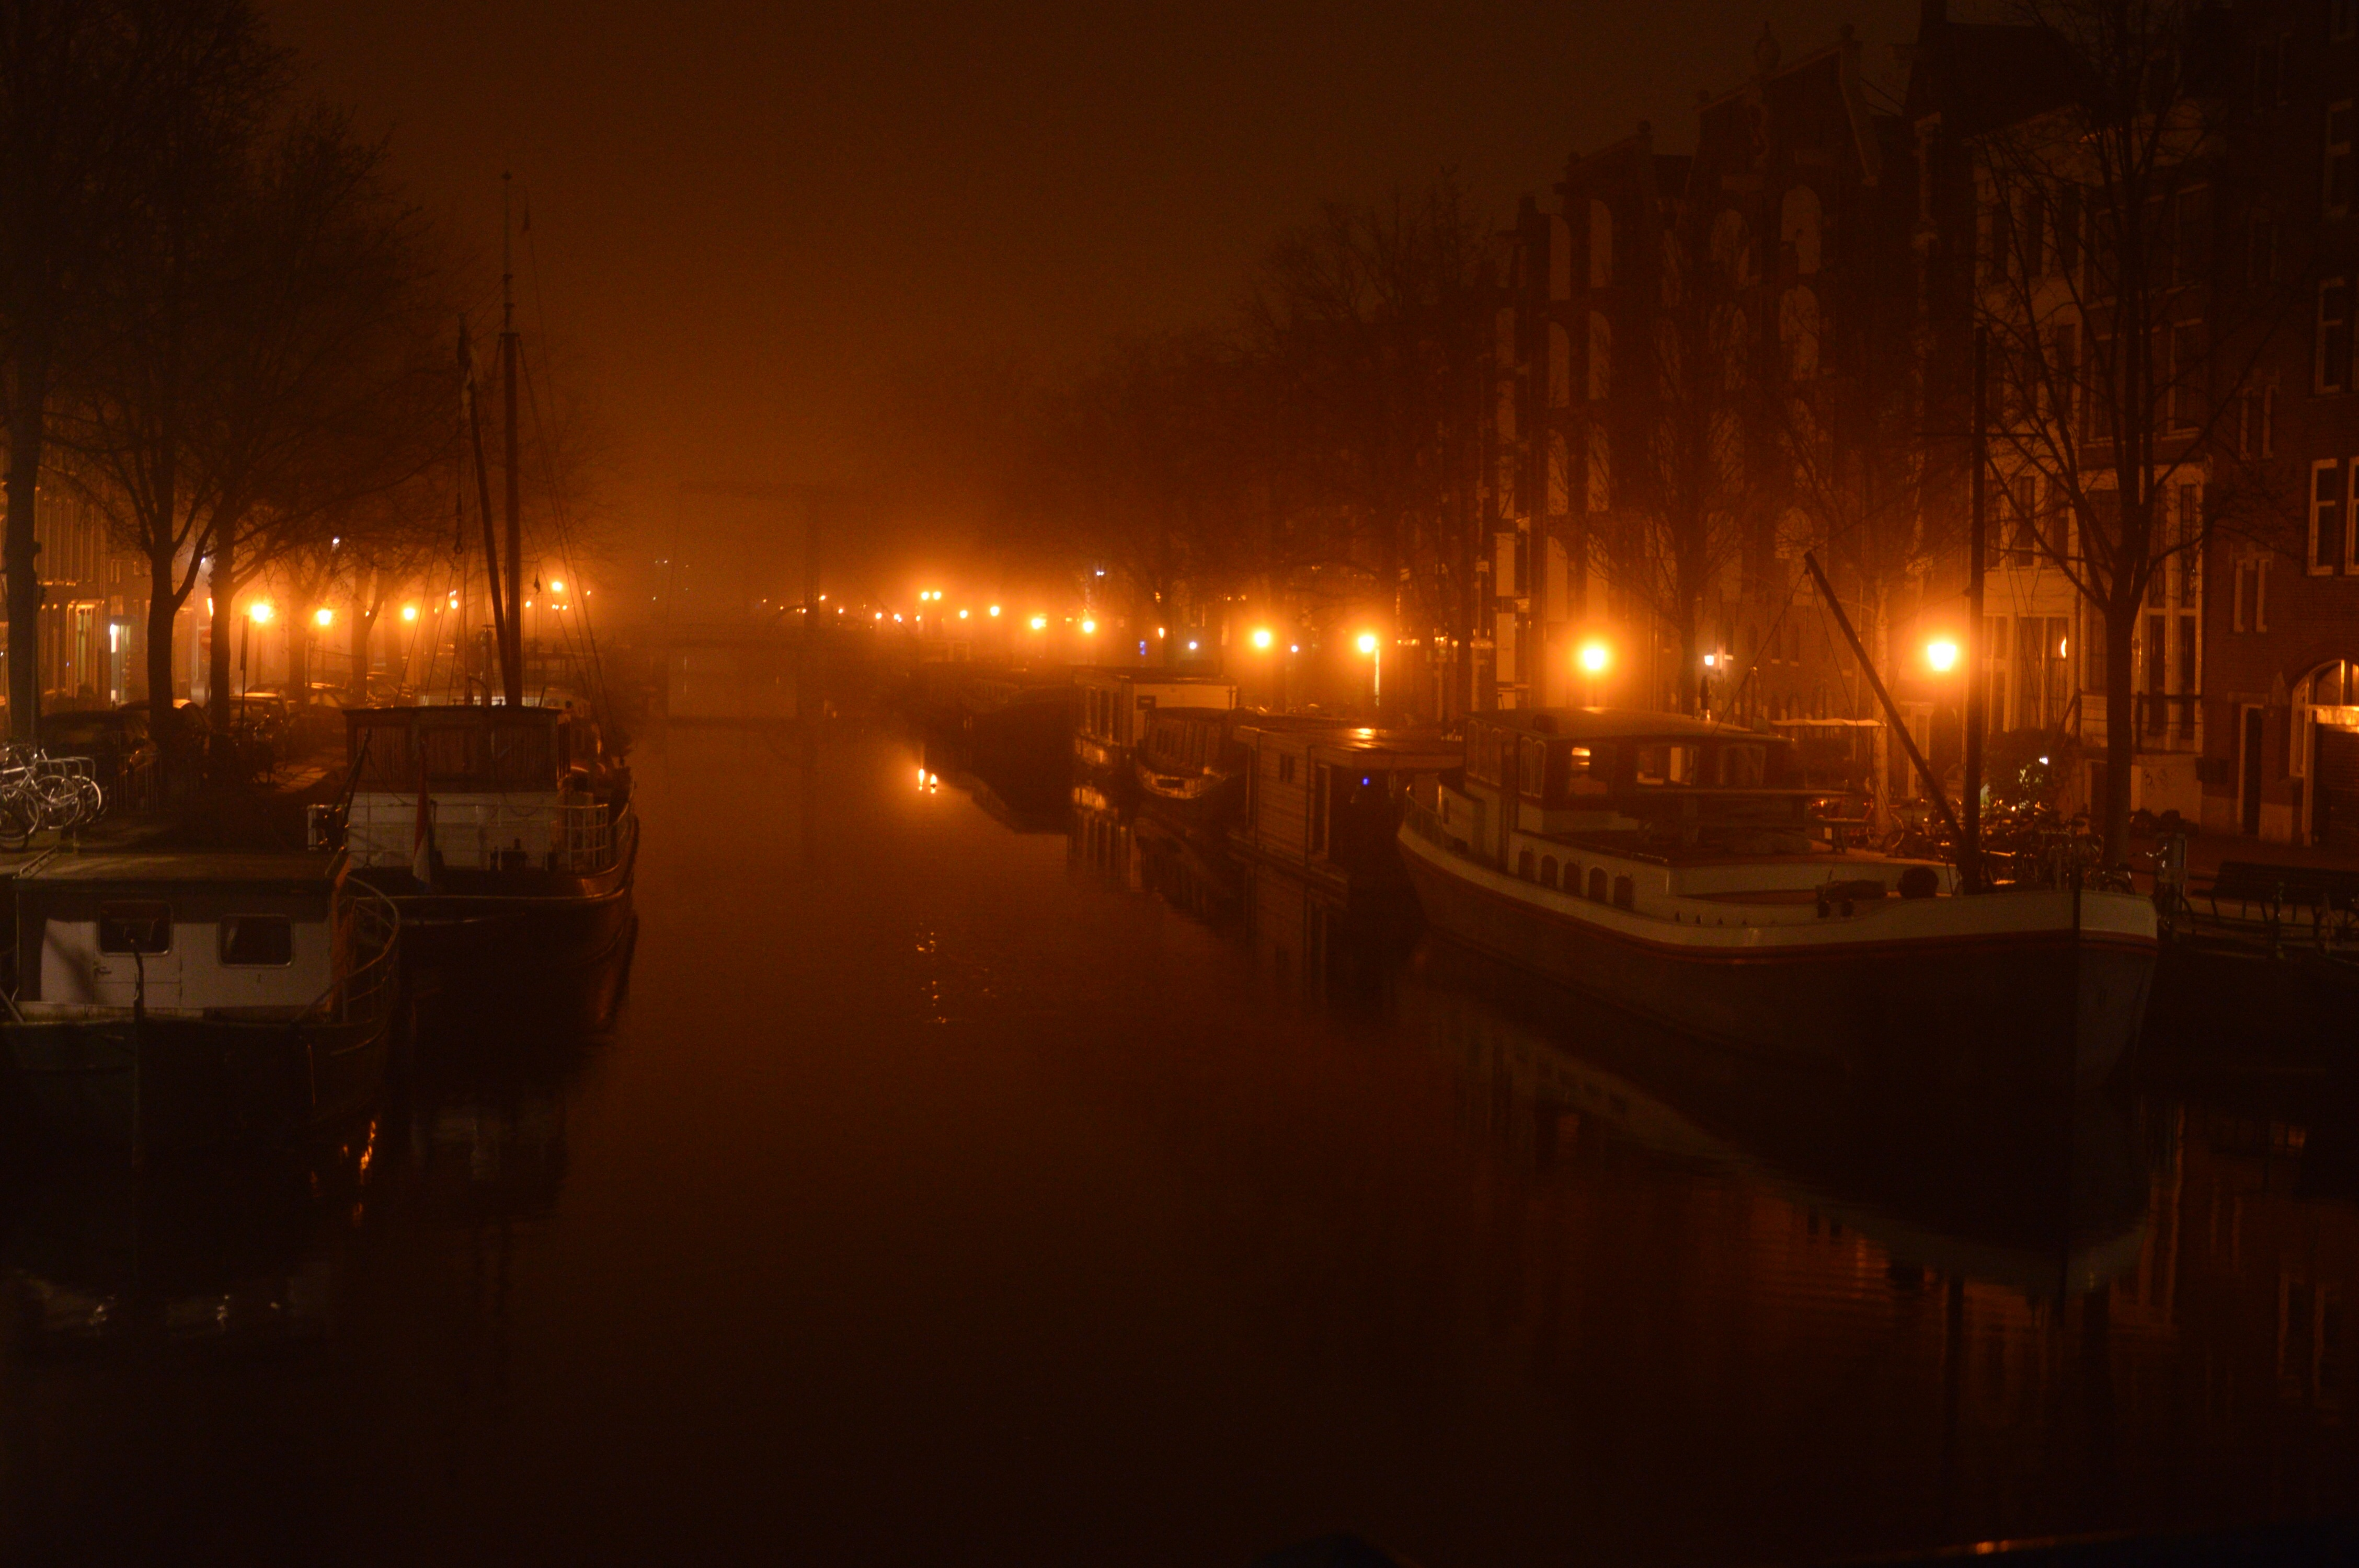 Mist on canal in Amsterdam